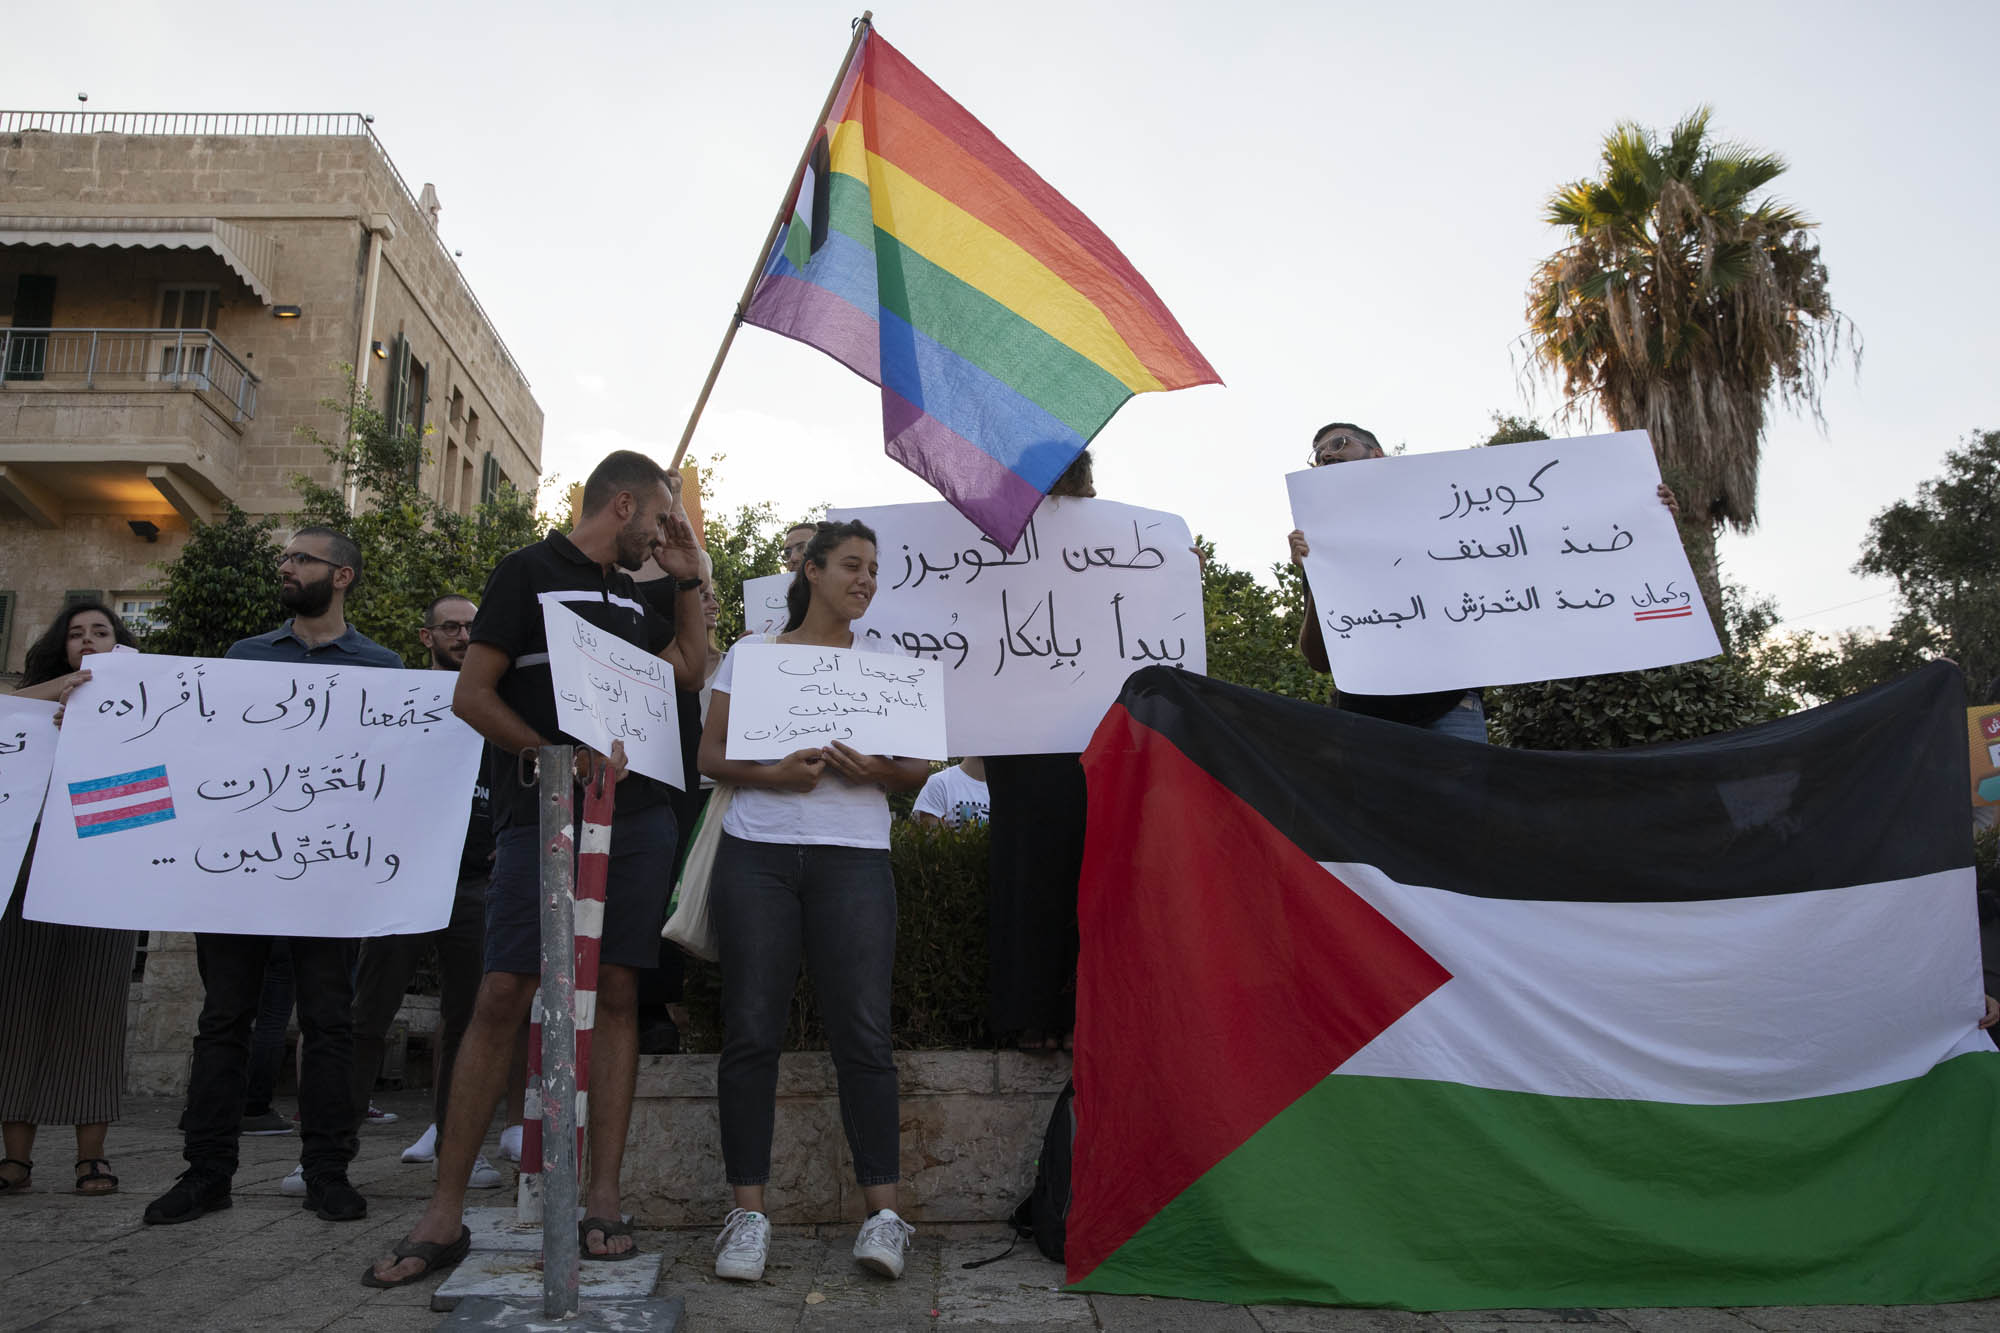 LGBTQ Palestinians take part in a protest following the stabbing of a queer Arab teen in Tel Aviv, August 1, 2019. (Oren Ziv)